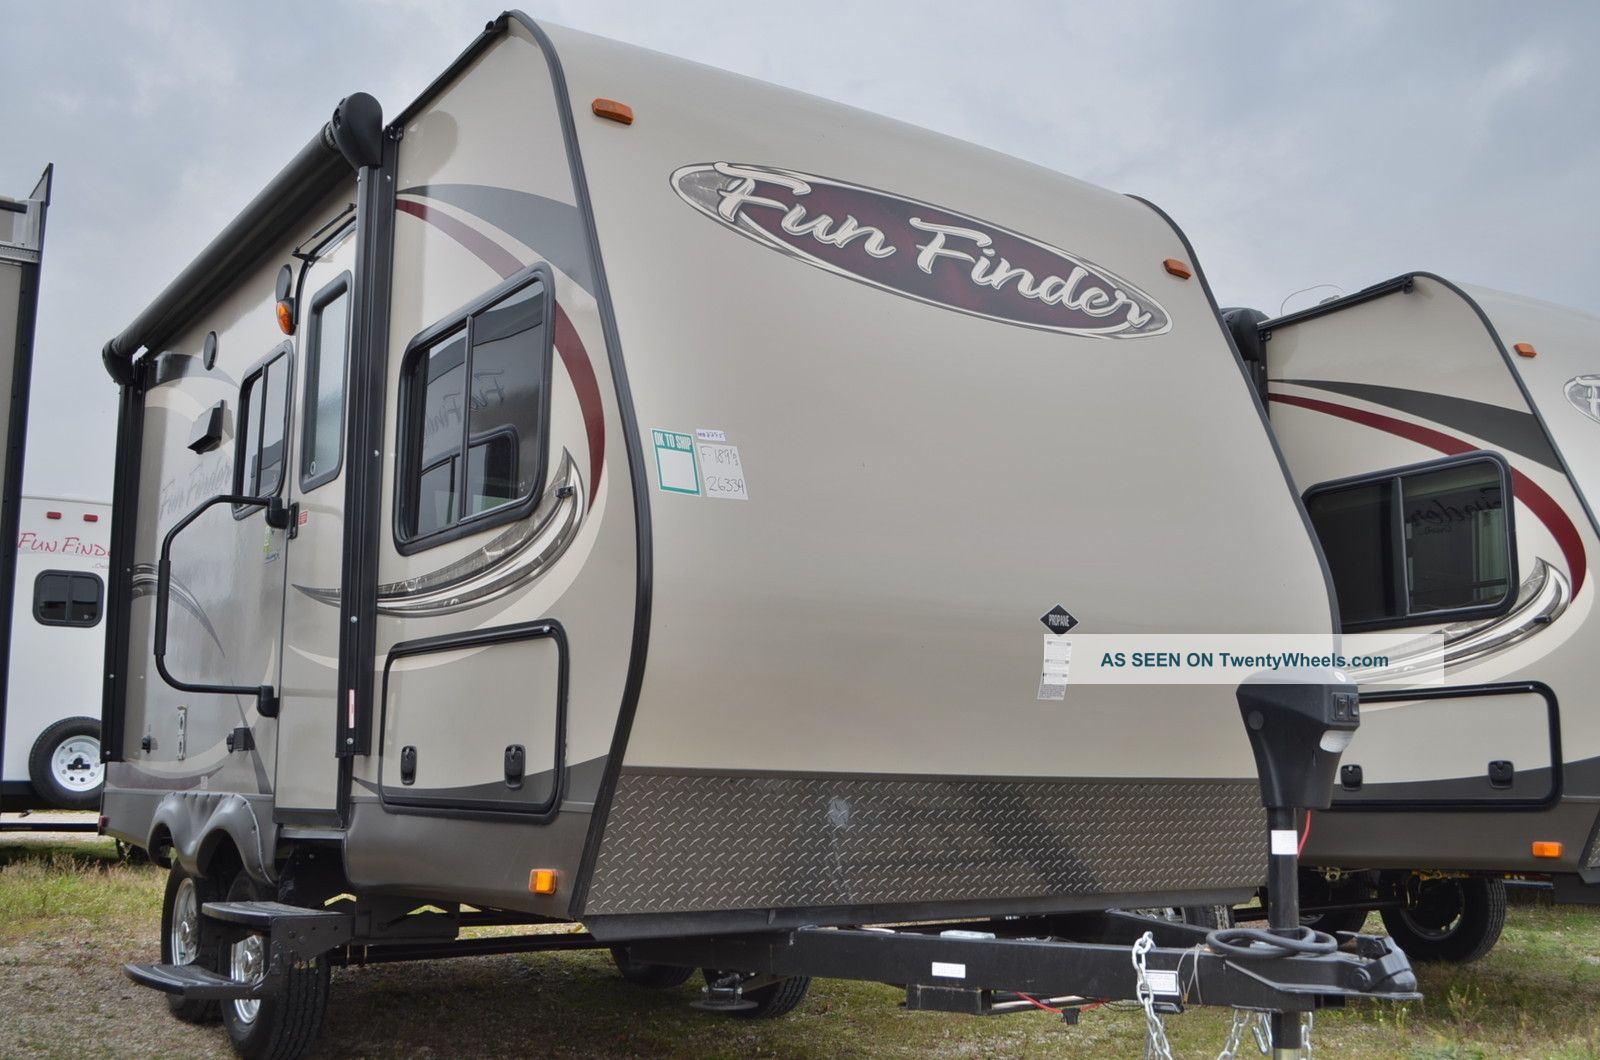 2013 Cruiser Rv Fun Finder 189fds Travel Trailers photo